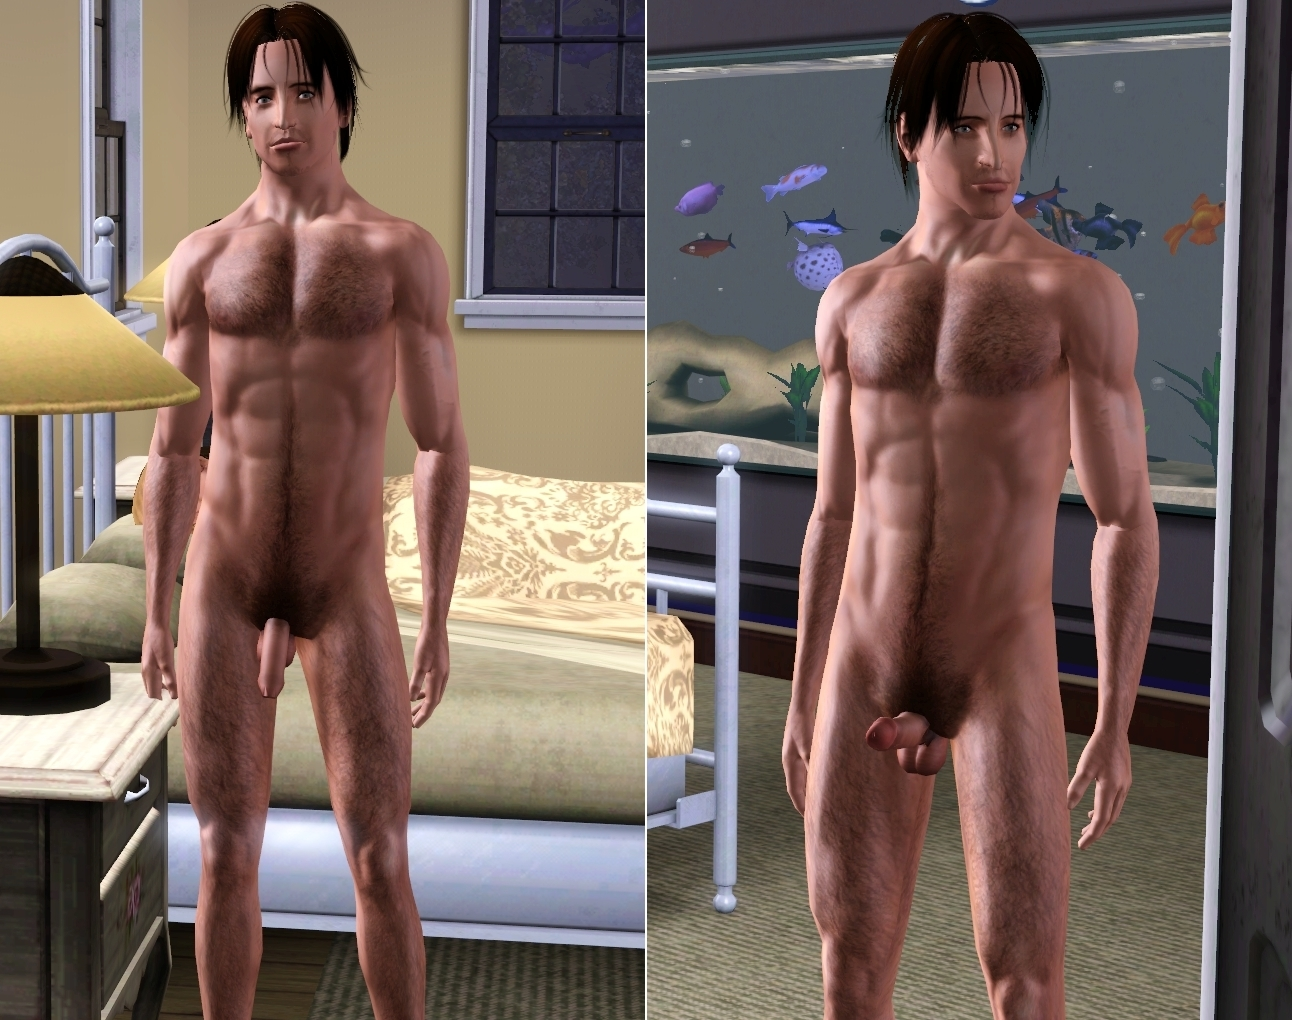 The sims having sex naked sexy clips